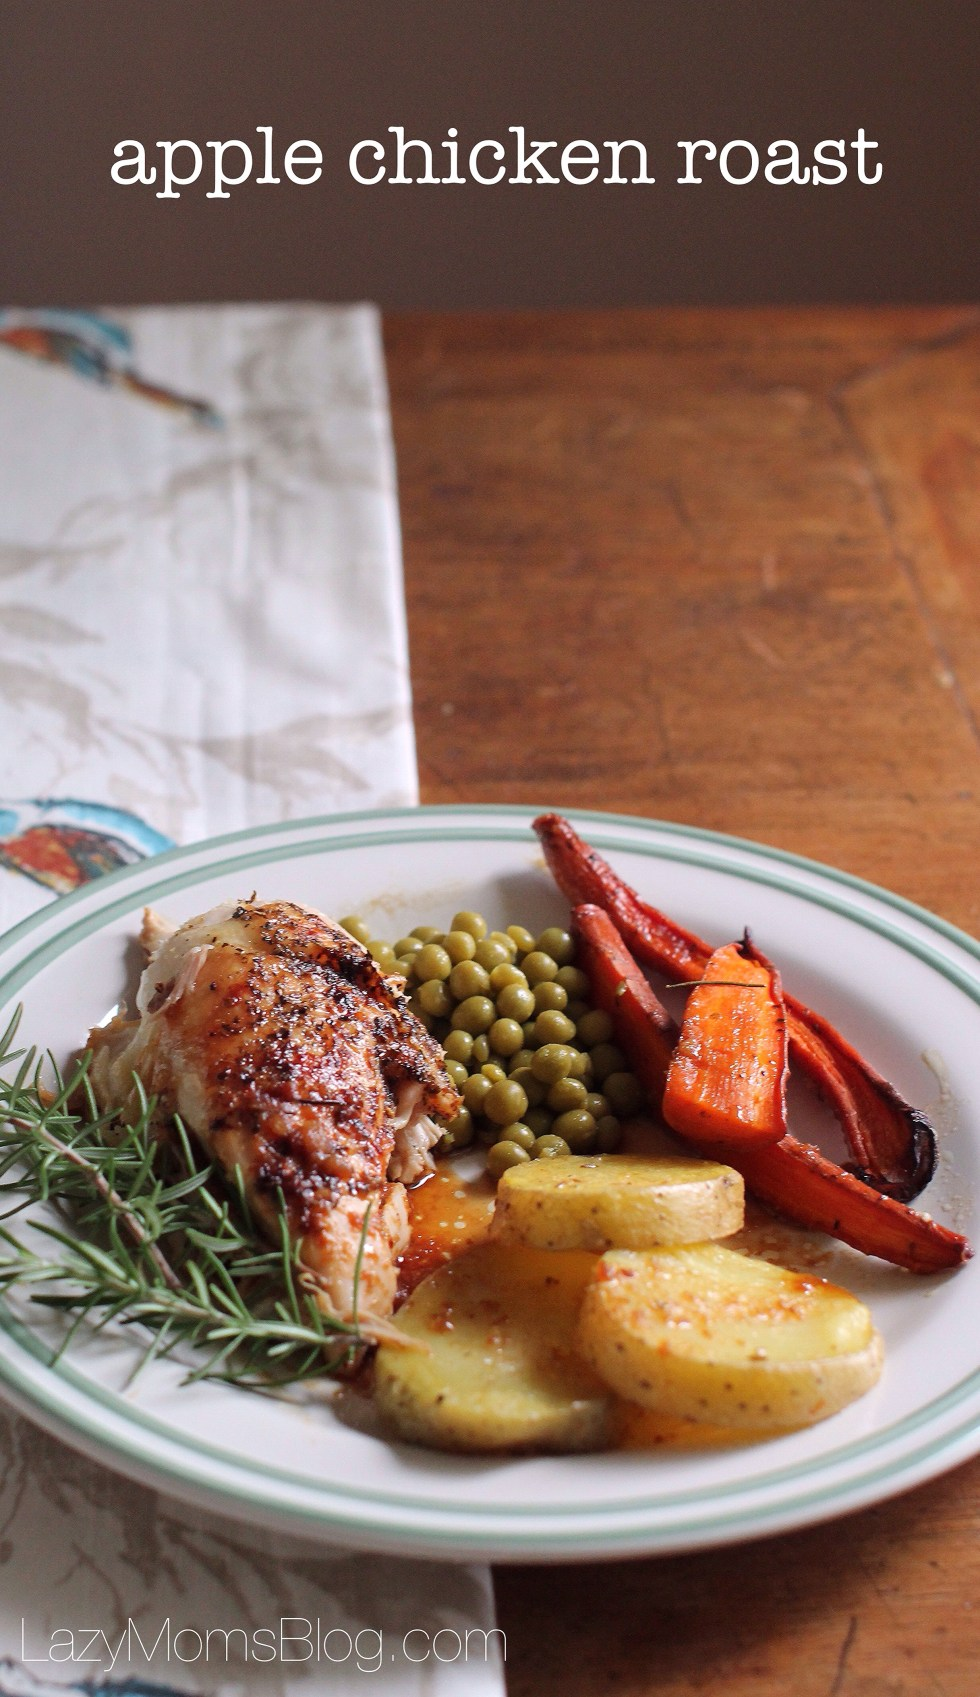 Easy delicious and comforting apple chicken roast